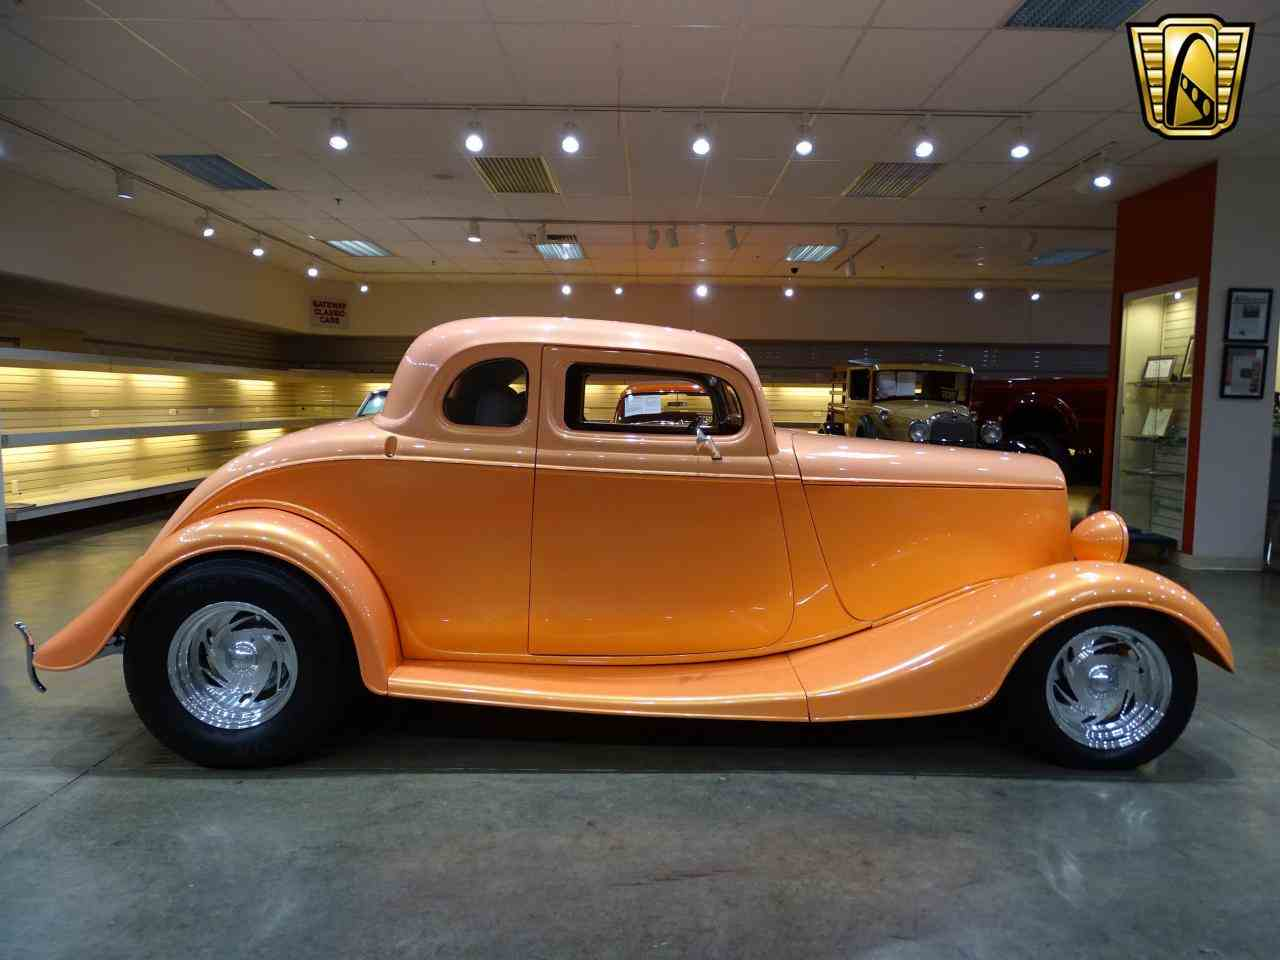 Large Picture of '34 Ford Coupe located in Illinois Offered by Gateway Classic Cars - St. Louis - LB3Y